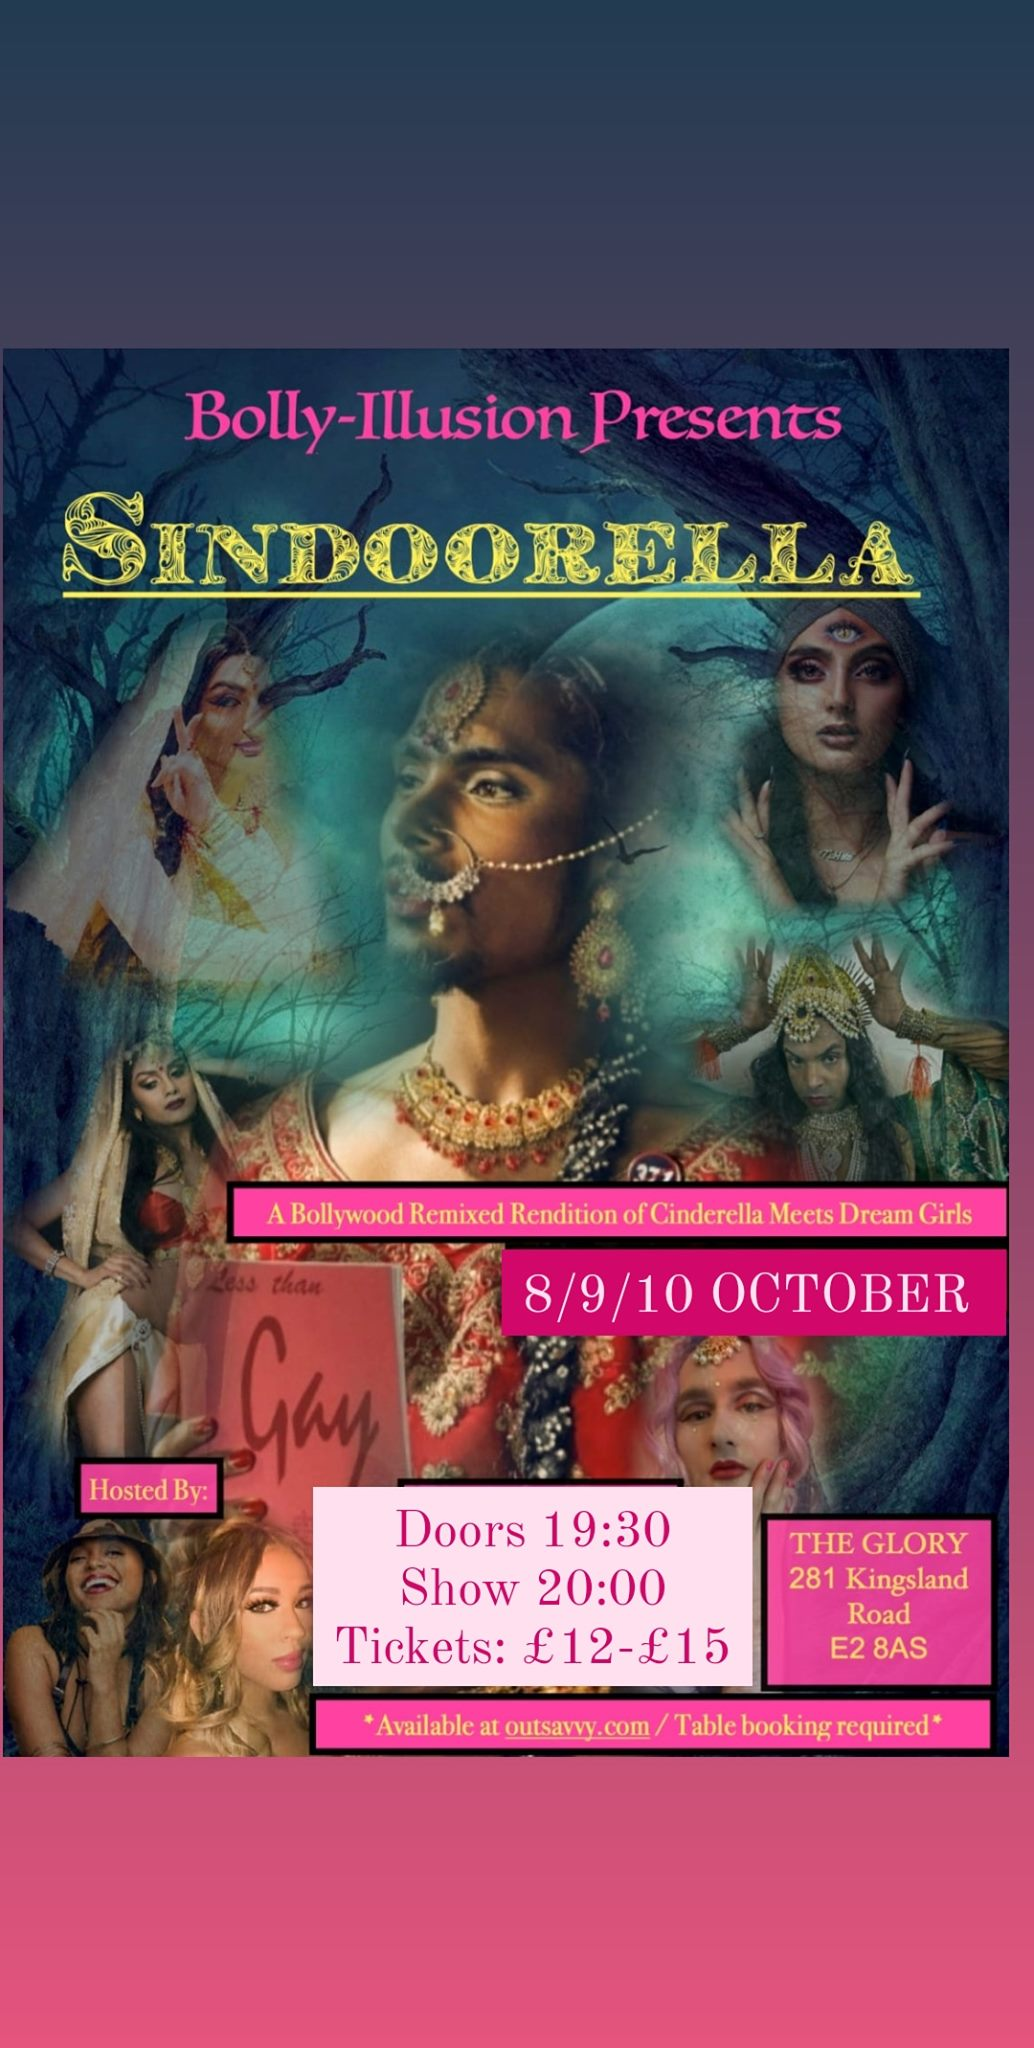 Bolly-Illusion presents Sindoorella